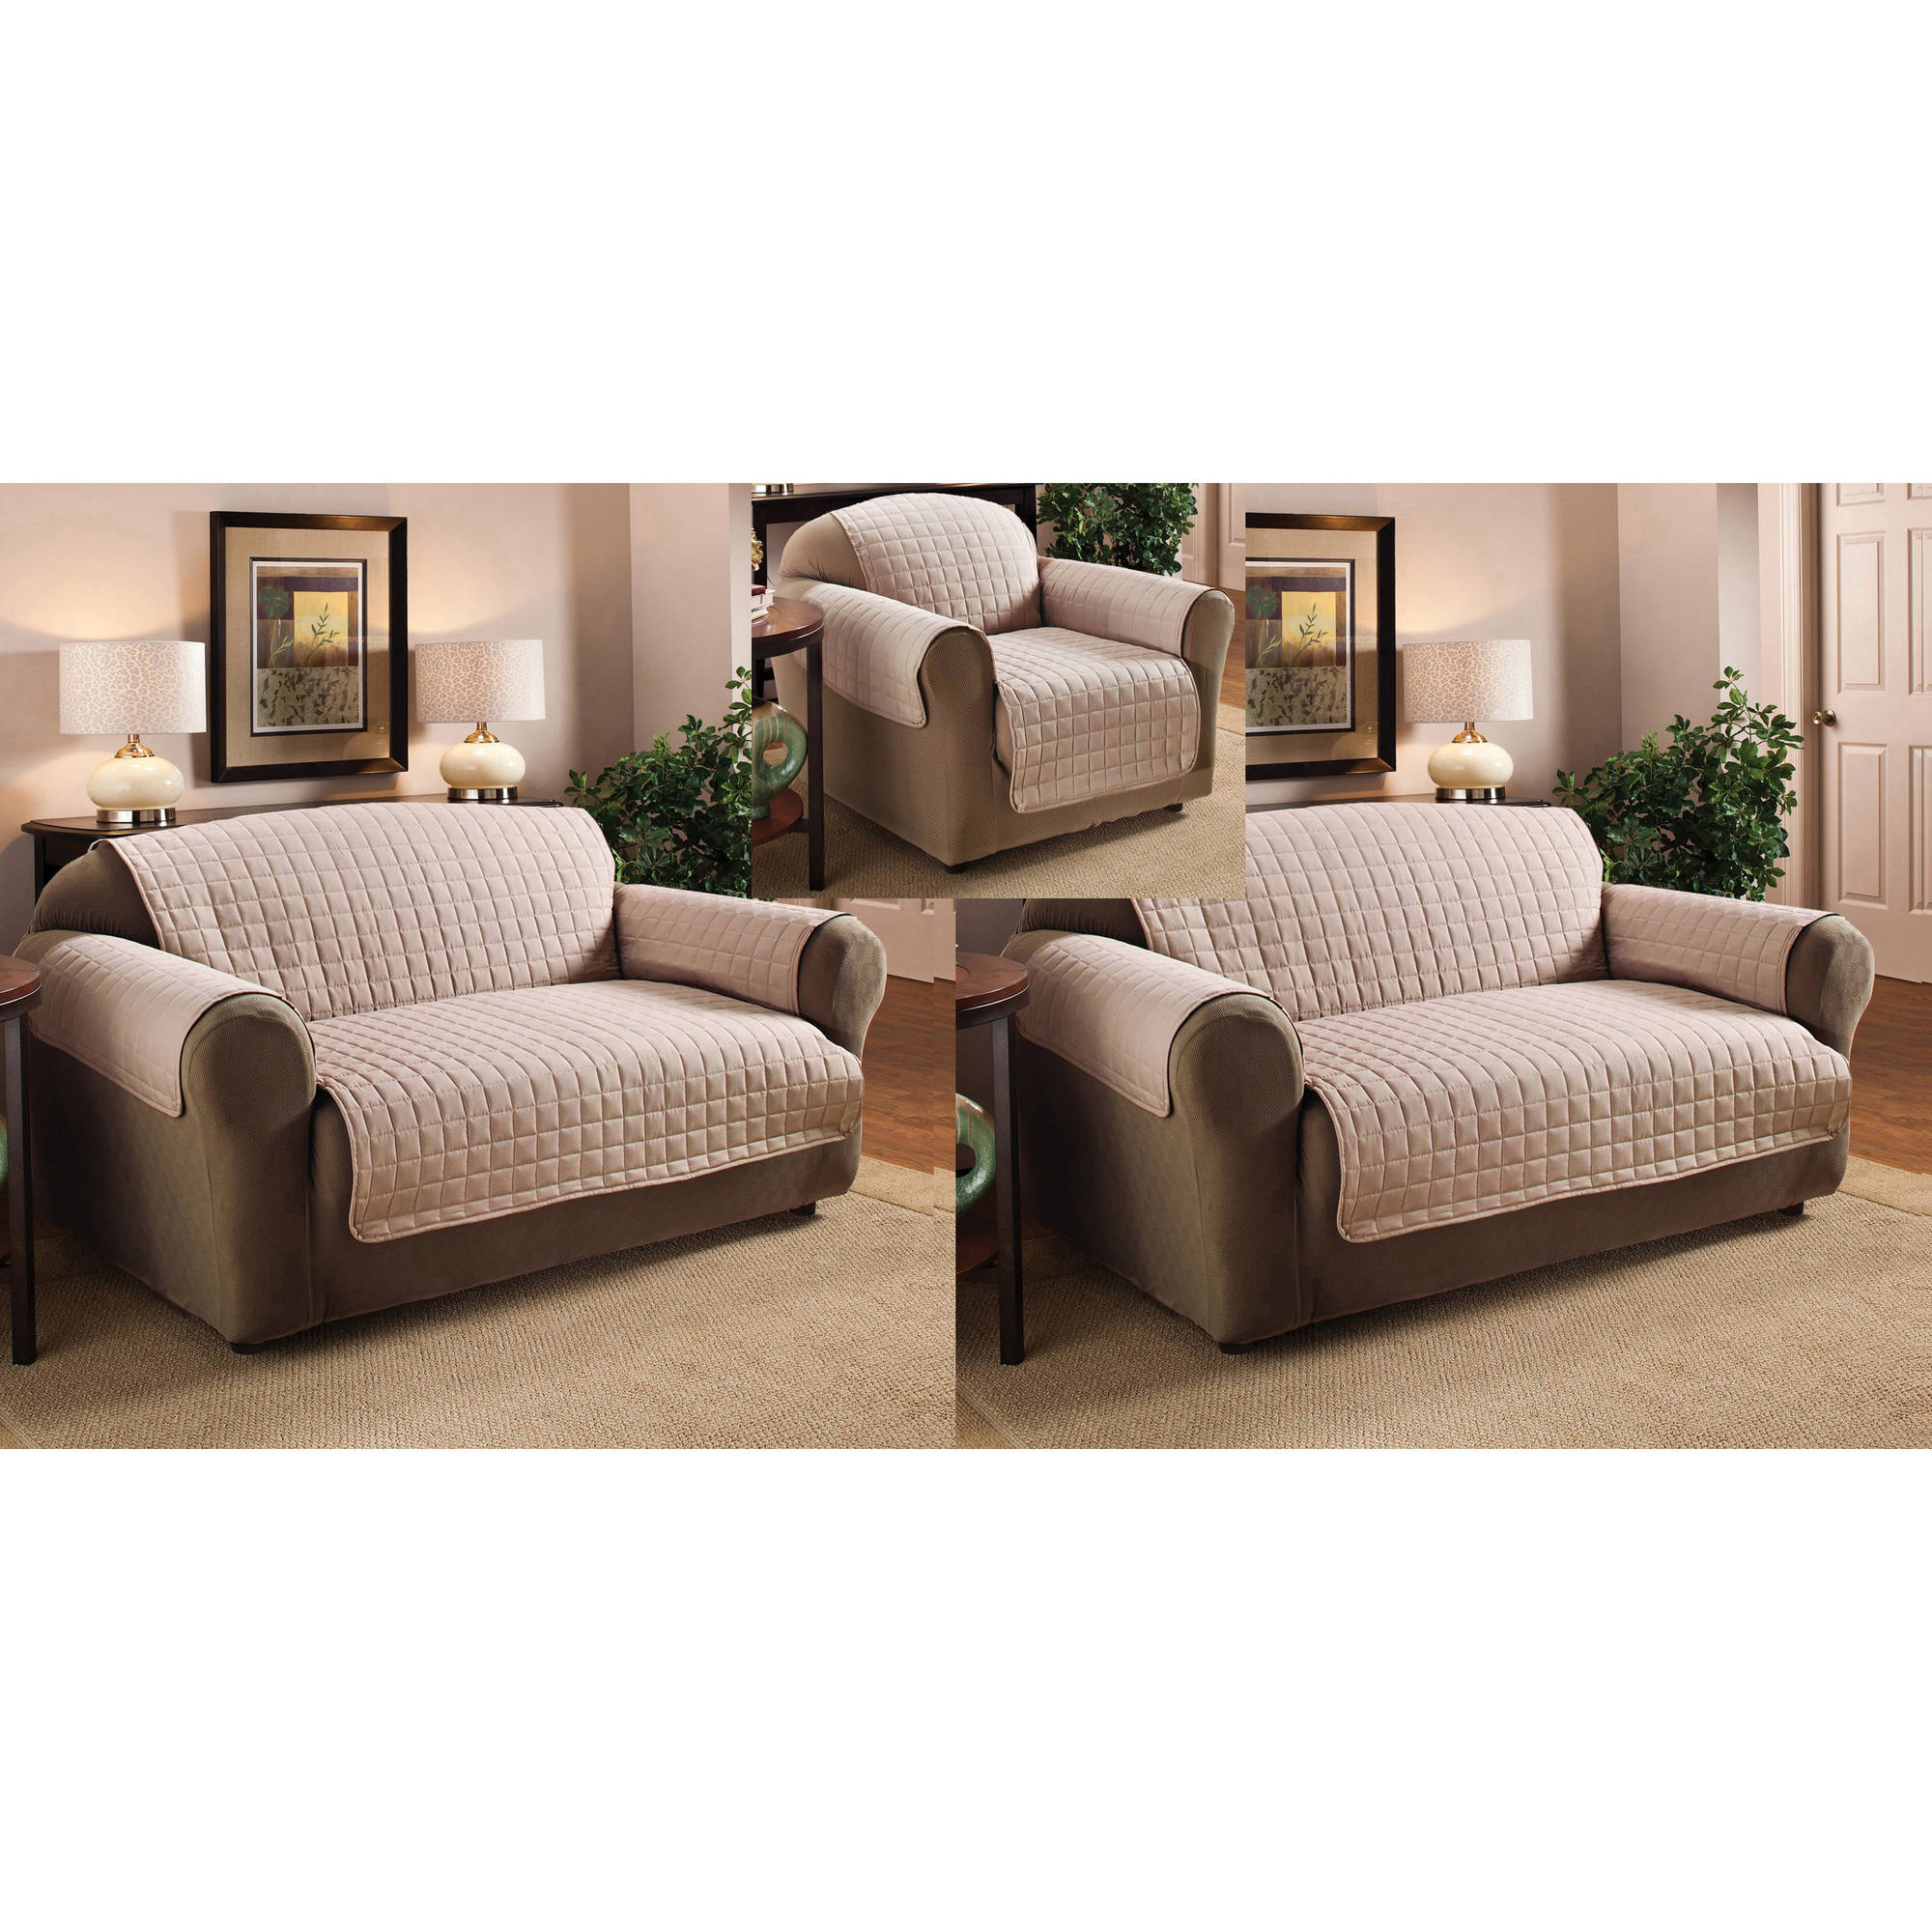 Polyester Microfiber Quilted Chair Loveseat And Sofa Protector Cover 3 Piece Set Ebay